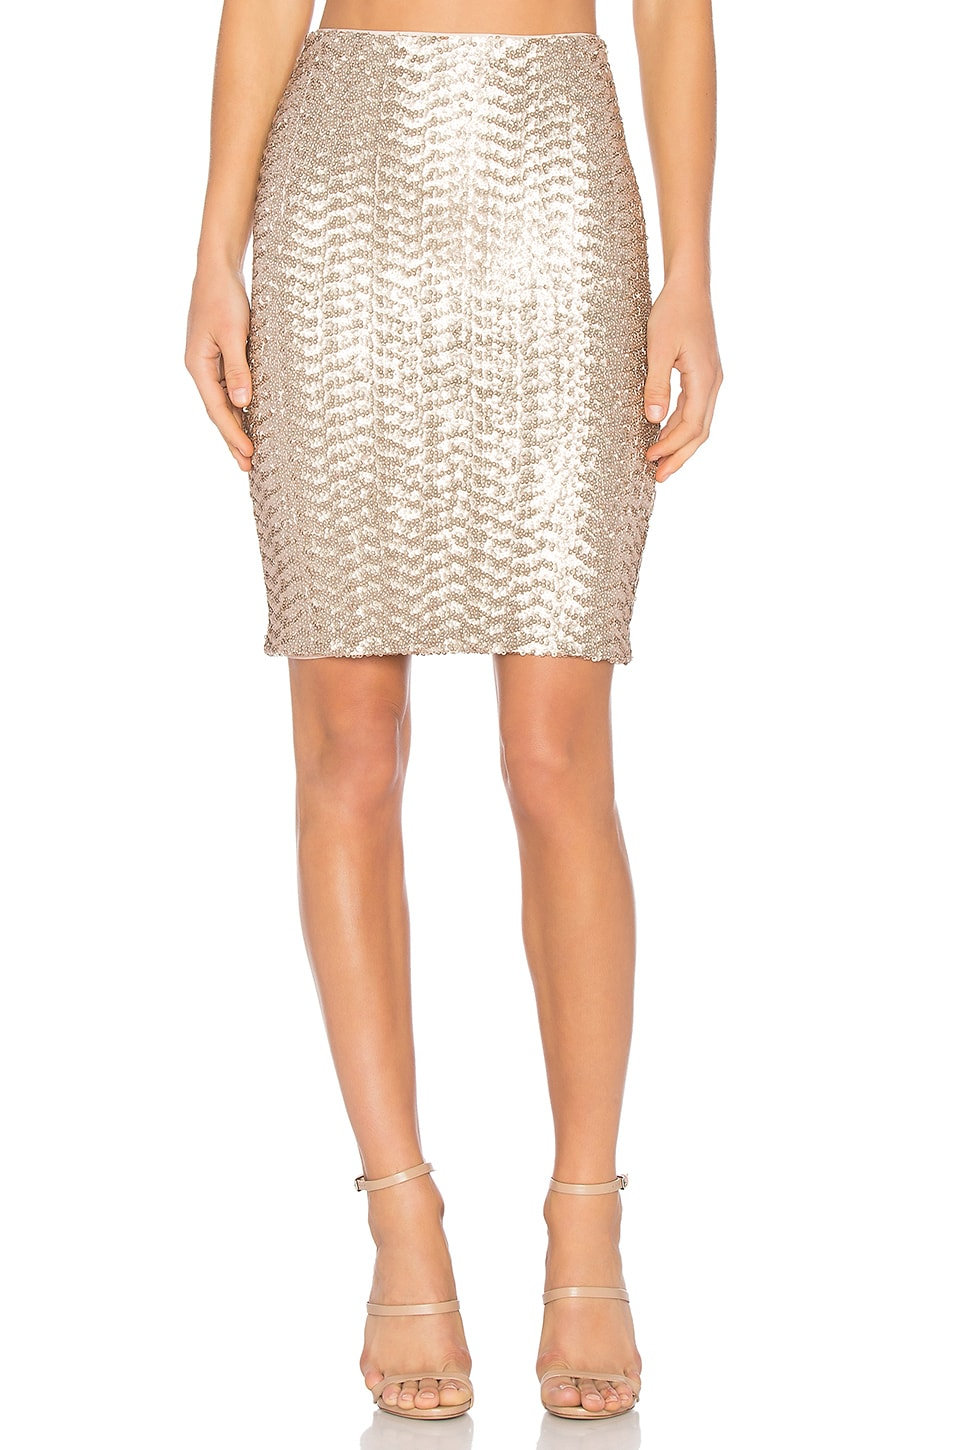 Alice + Olivia Ramos Sequin Midi Skirt in Nude Pink